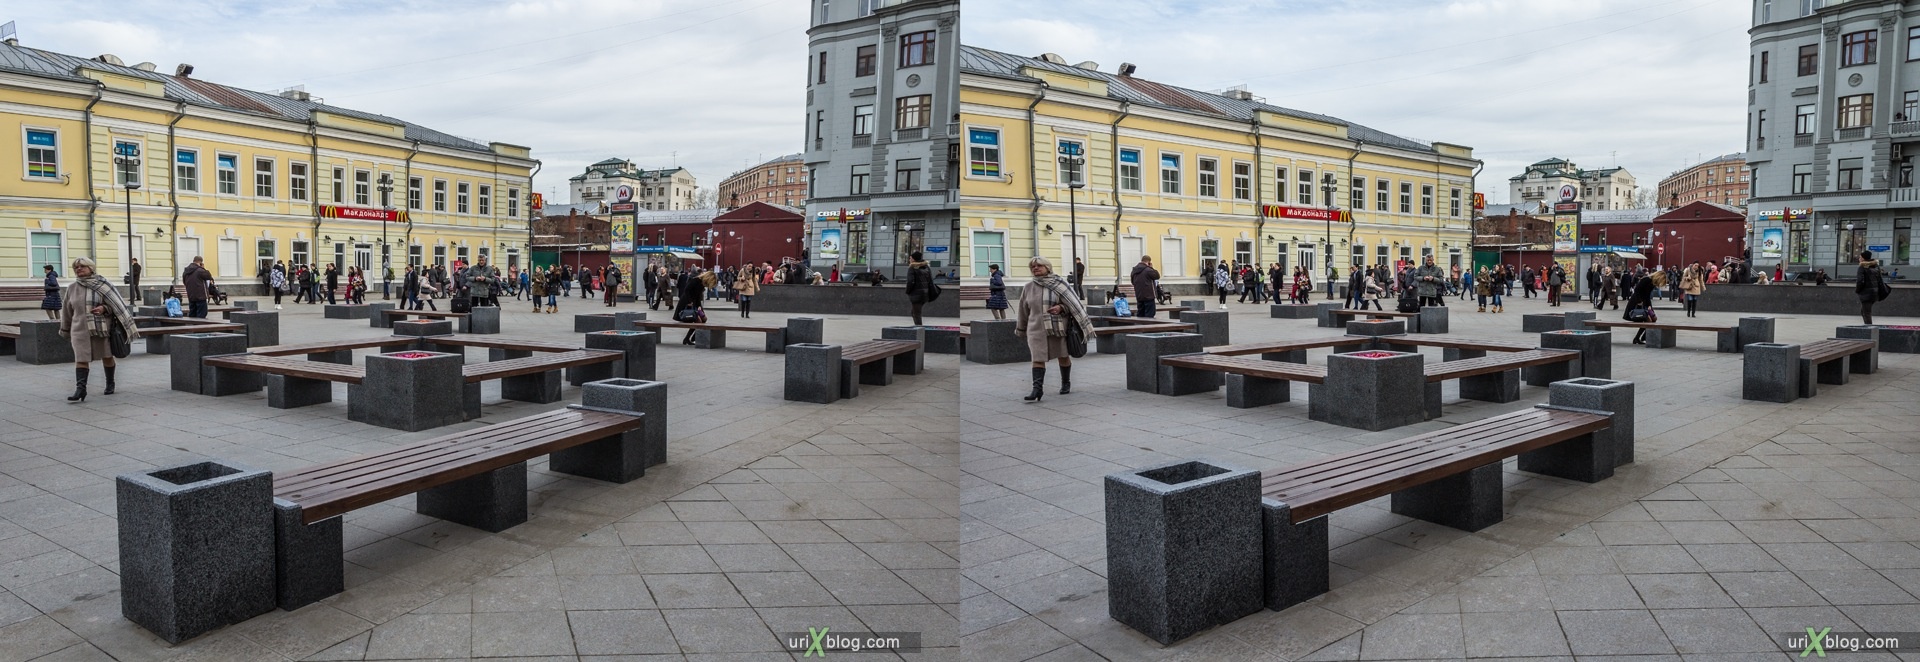 2013, Moscow, Russia, Tratjakovskaya, metro, square, street, new pedestrian zone, 3D, stereo pair, cross-eyed, crossview, cross view stereo pair, stereoscopic